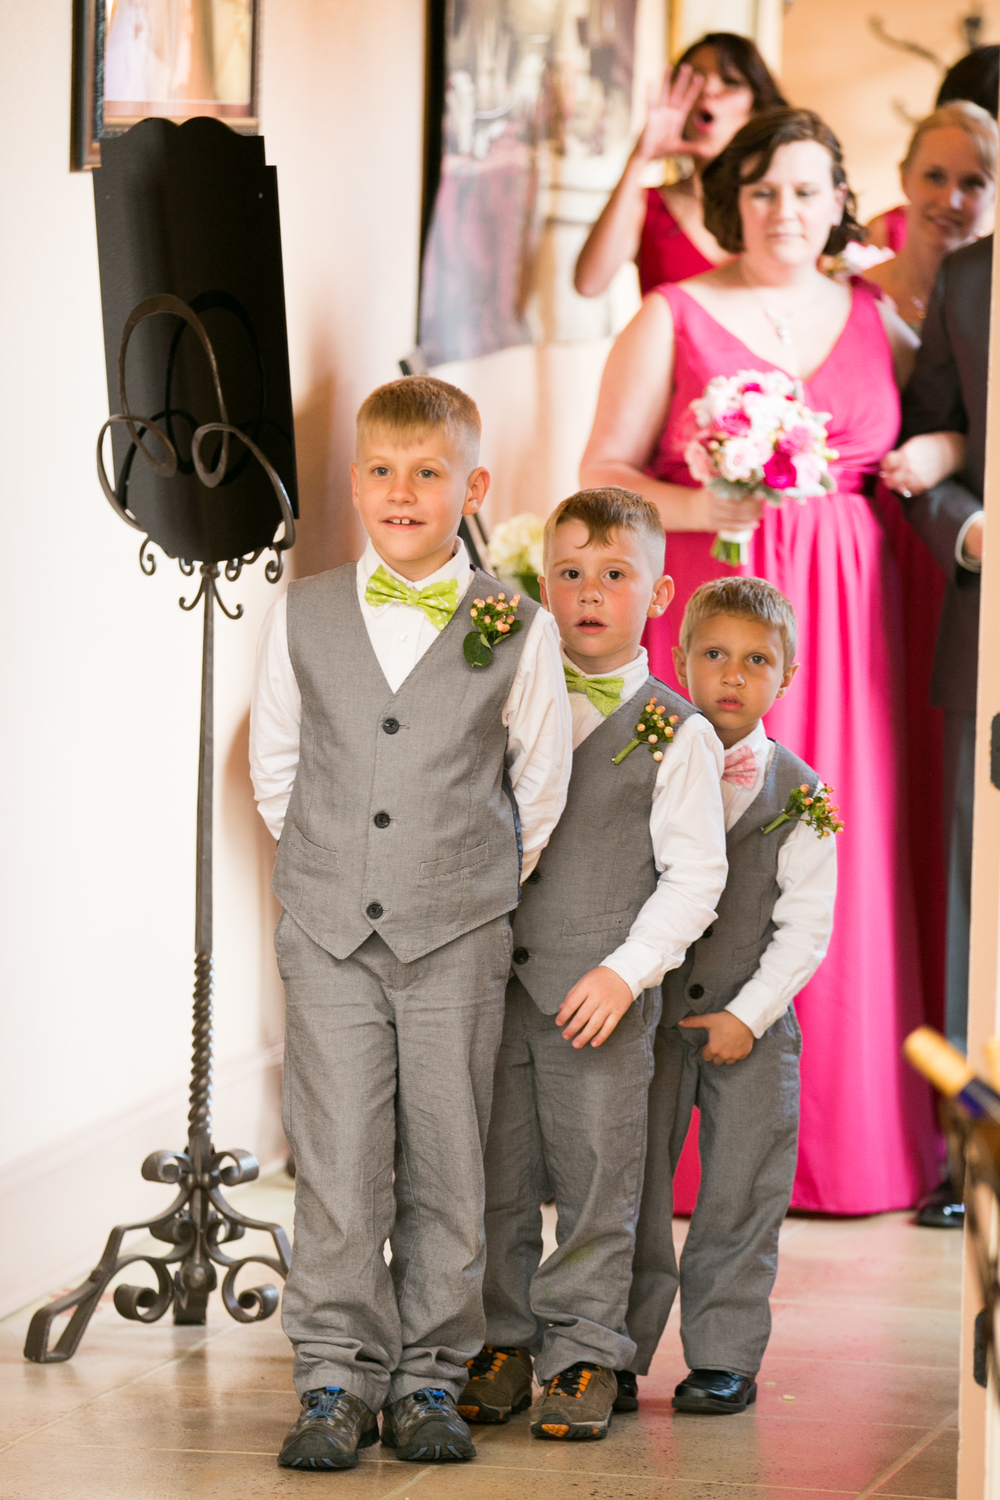 3/4 of my ring security team ready for their big entrance into the reception